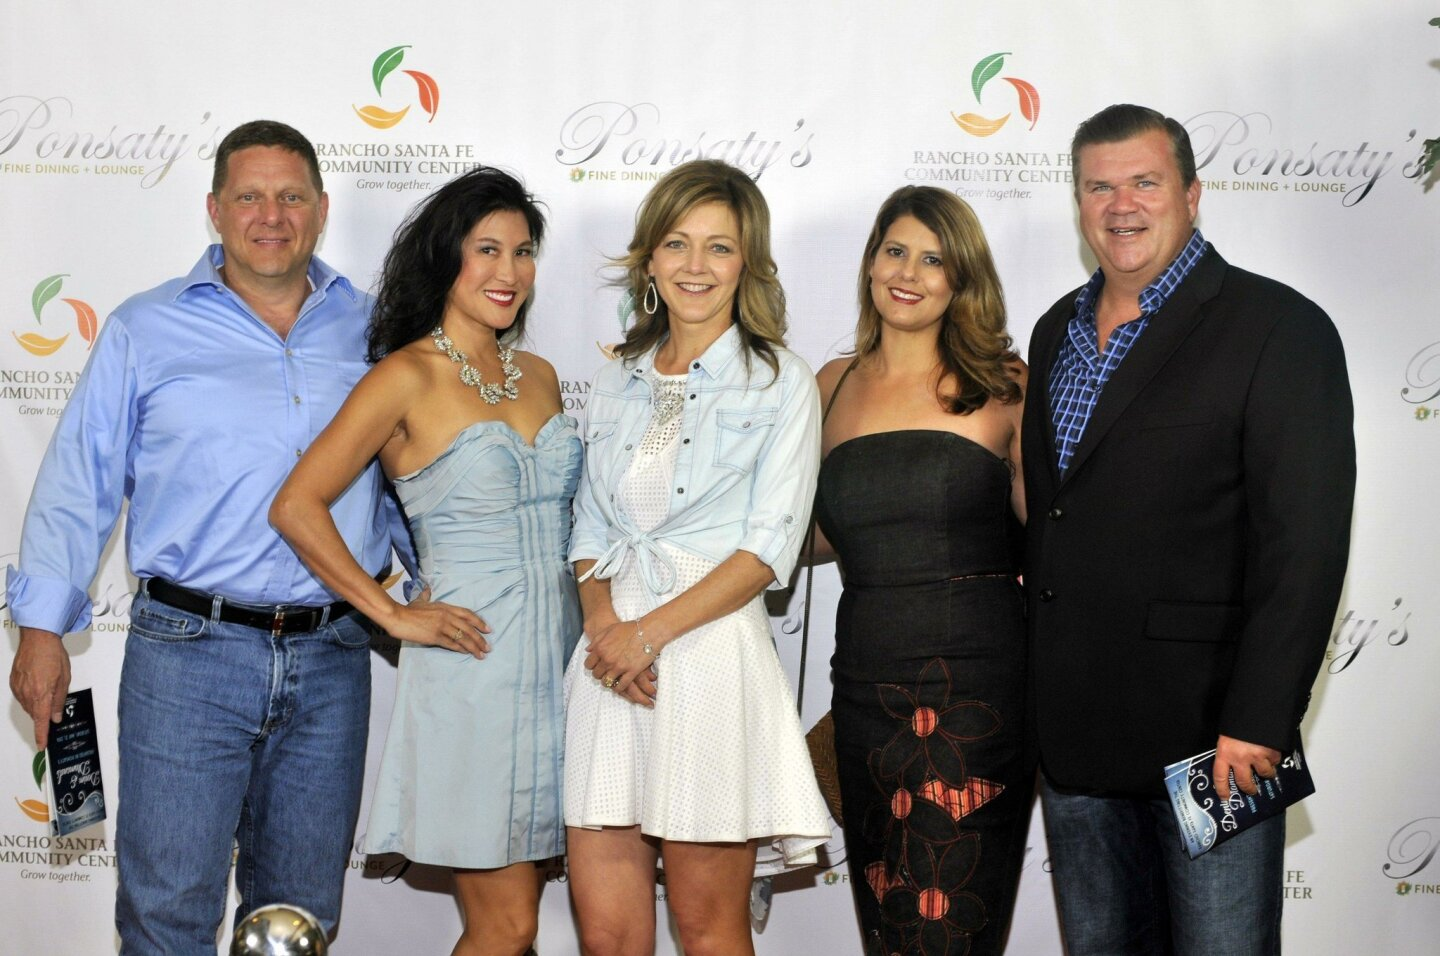 Eric Carlson, Cami Rosso, board member Krista Young, Jenna and Rob Albert